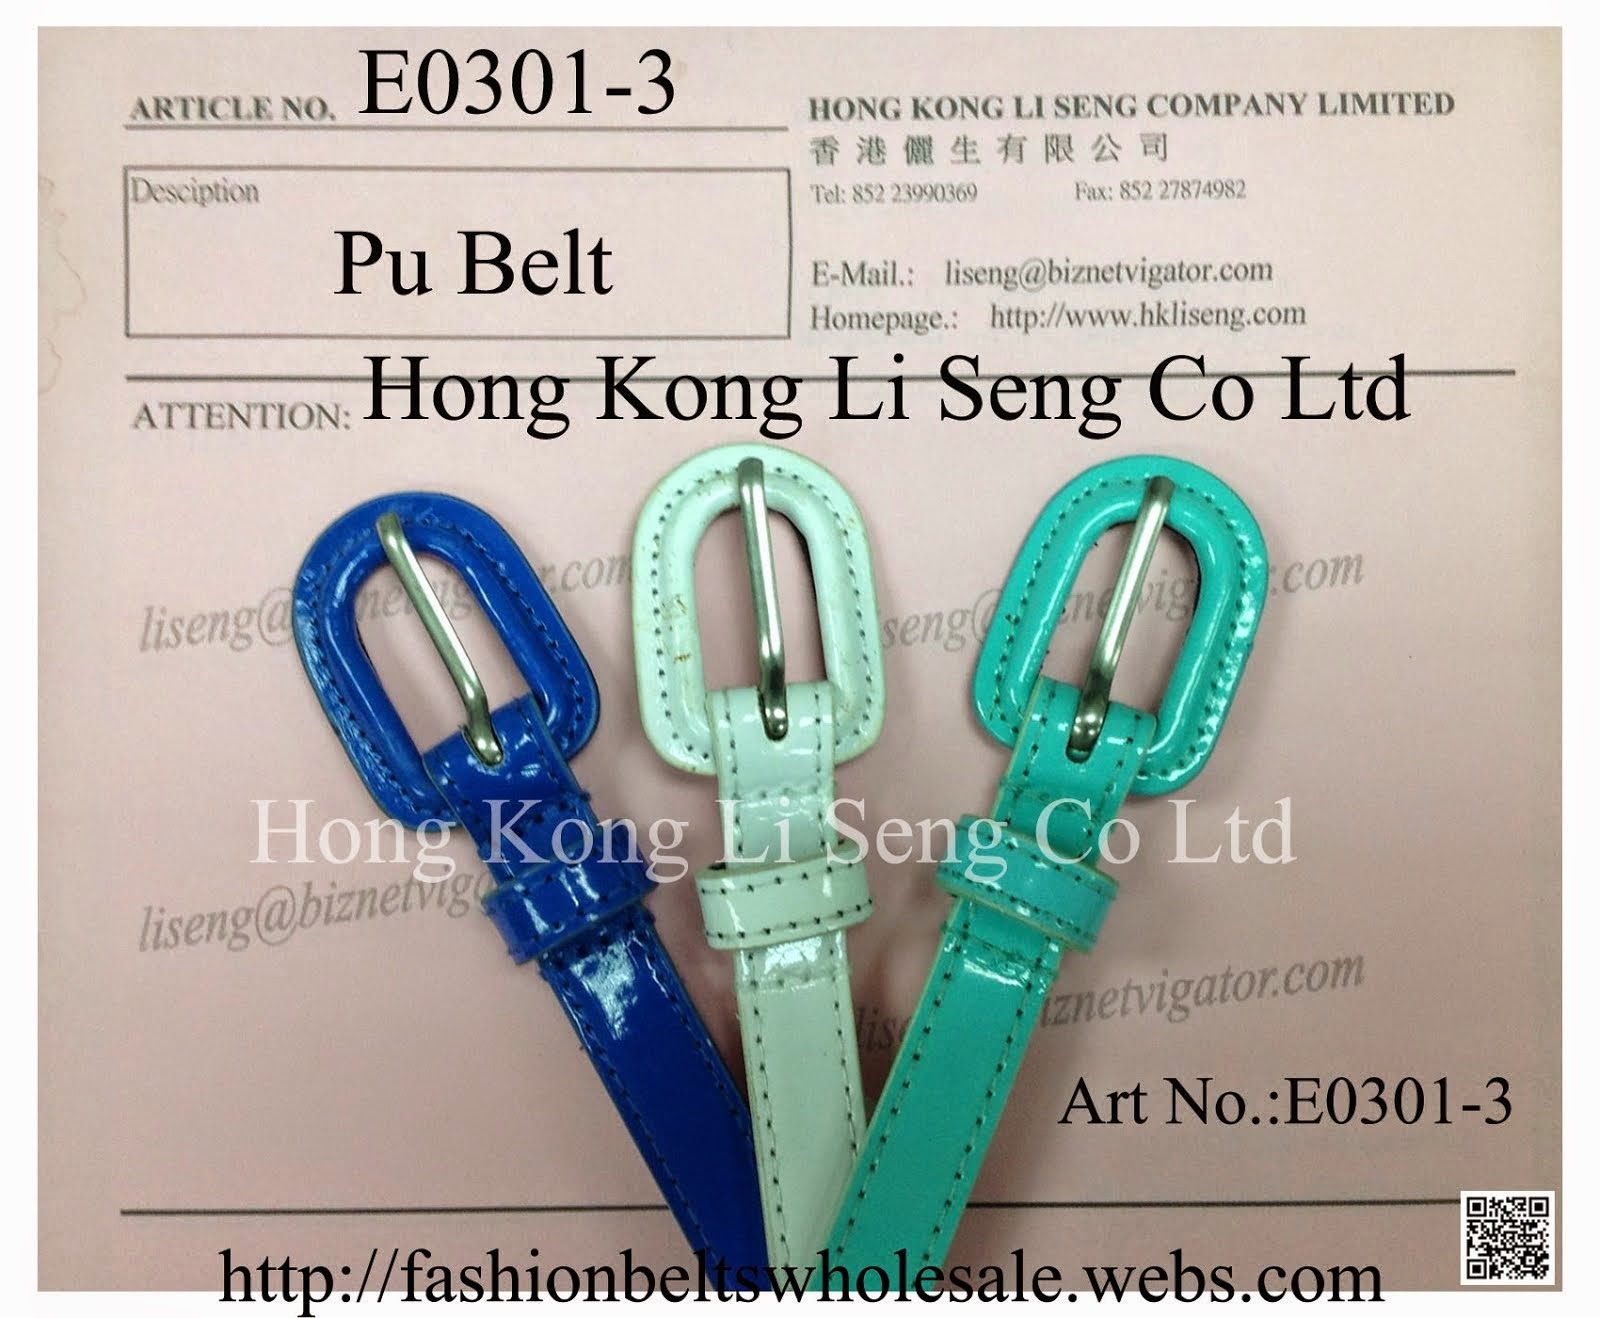 Girls Skinny Belt Manufacturer and Supplier - Hong Kong Li Seng Co Ltd